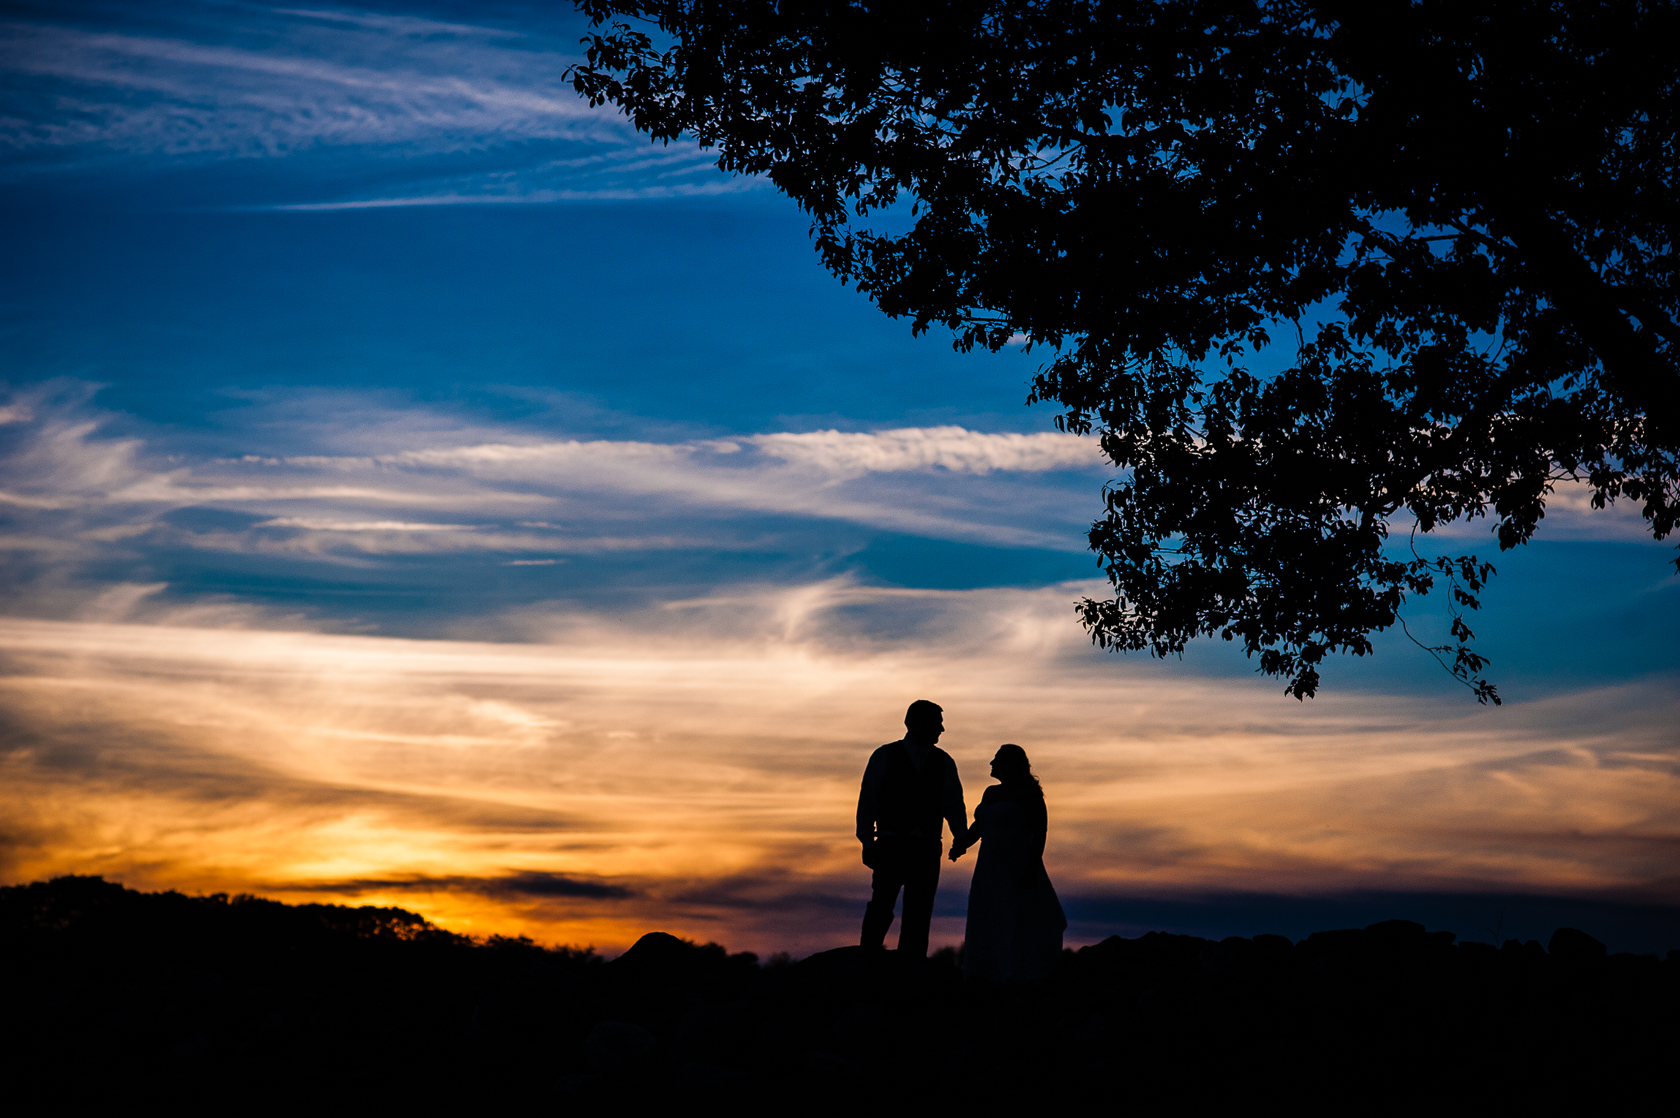 gorgeous sunset silhouette of couple